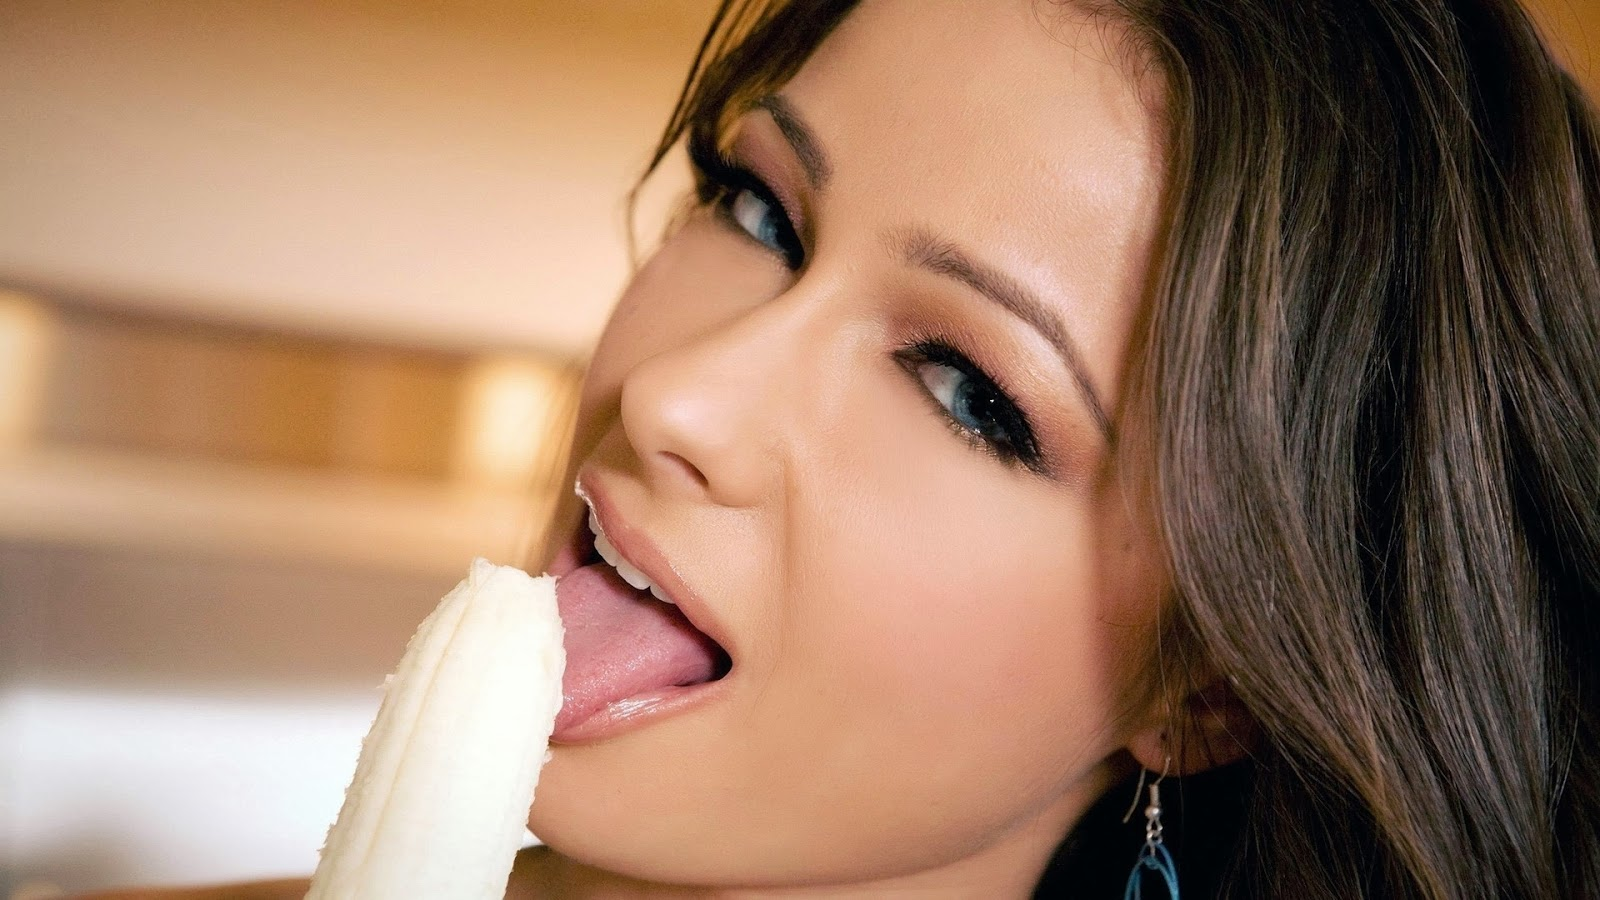 Melisa Mendiny Erotic Banana Eating Wallpaper